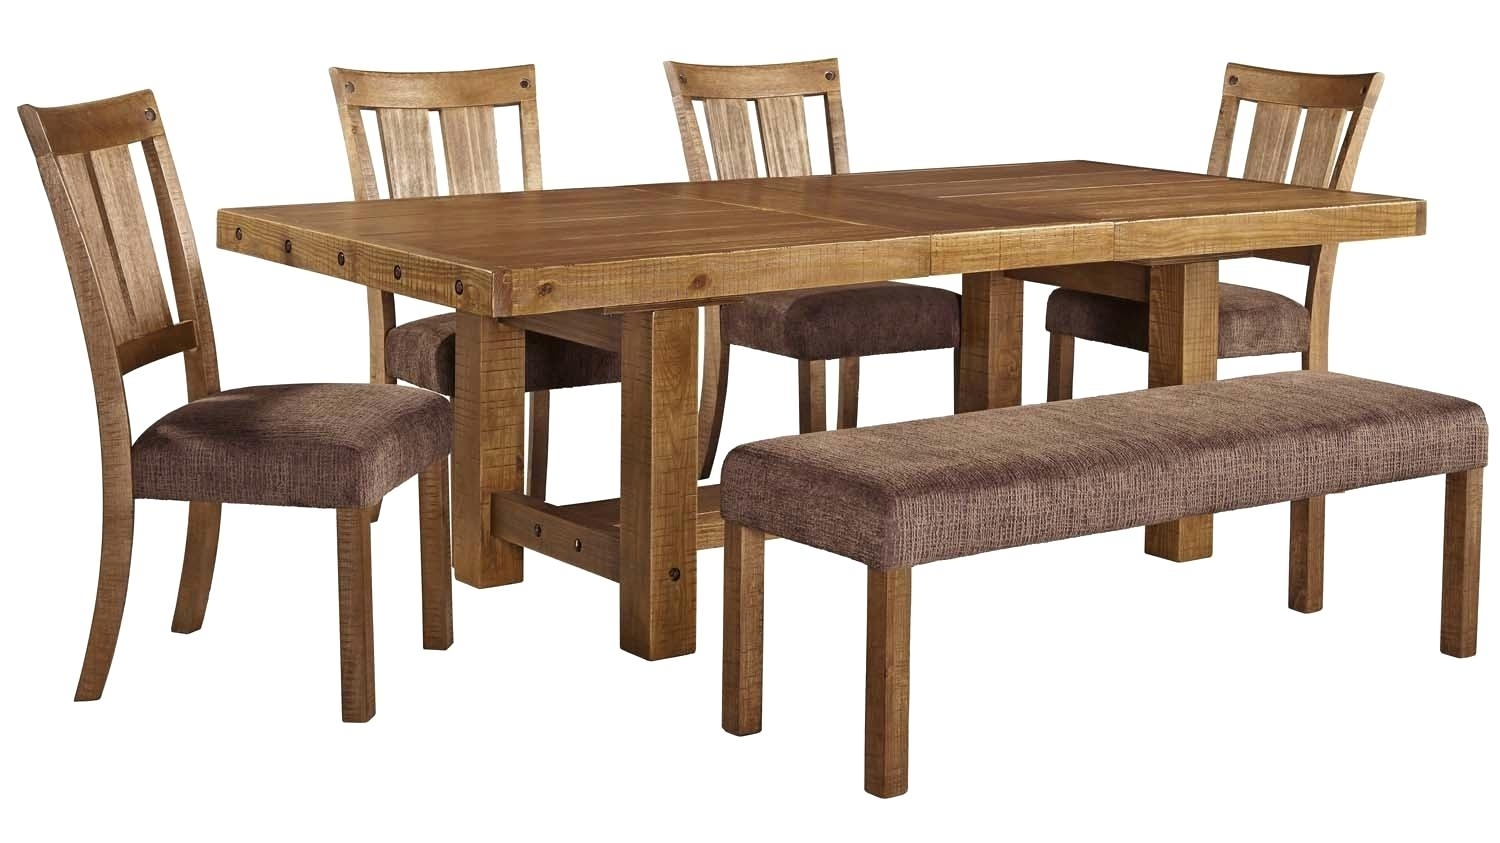 Dining Table 6 Piece Set Dining Tables Sets Dining Table Set 6 In Most Popular Mallard 6 Piece Extension Dining Sets (View 16 of 20)